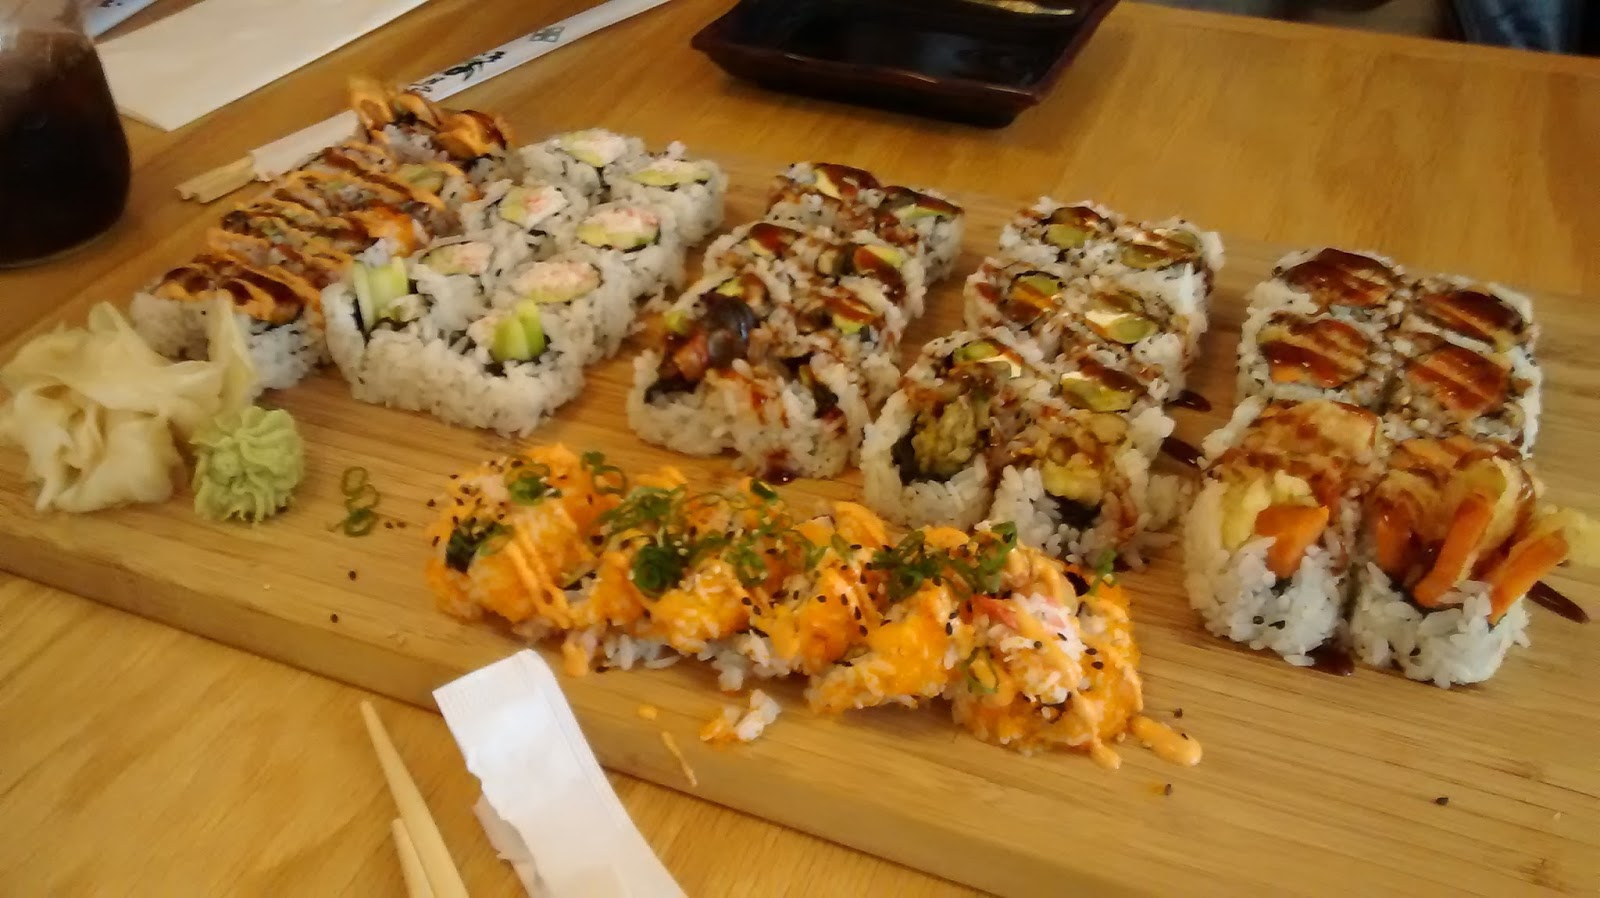 Sushi Station Webster Groves Visited February 2016 A free inside look at company reviews and salaries posted anonymously by employees. sushi station webster groves visited